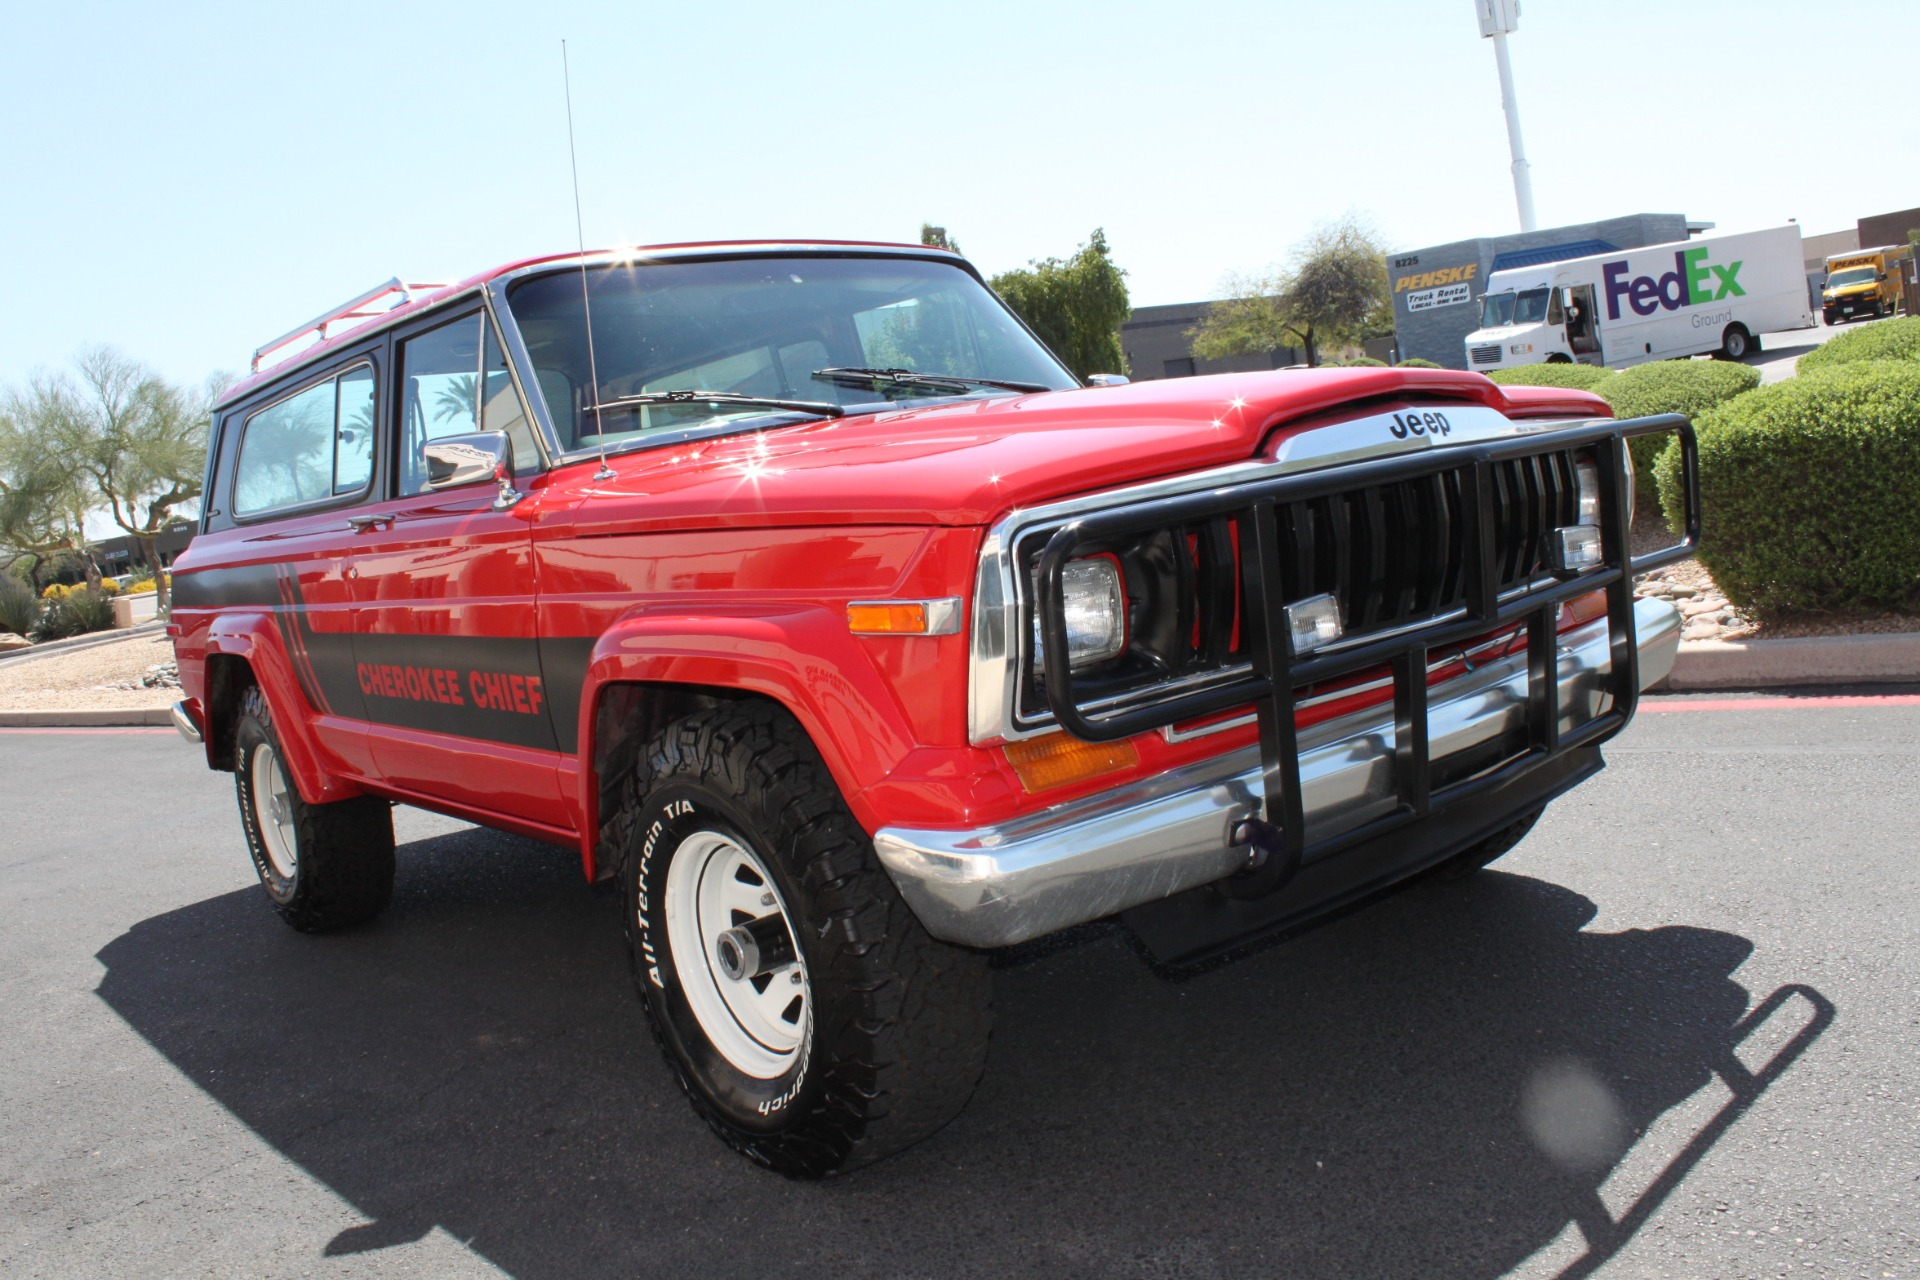 Used-1983-Jeep-Cherokee-4WD-Chief-Mercedes-Benz